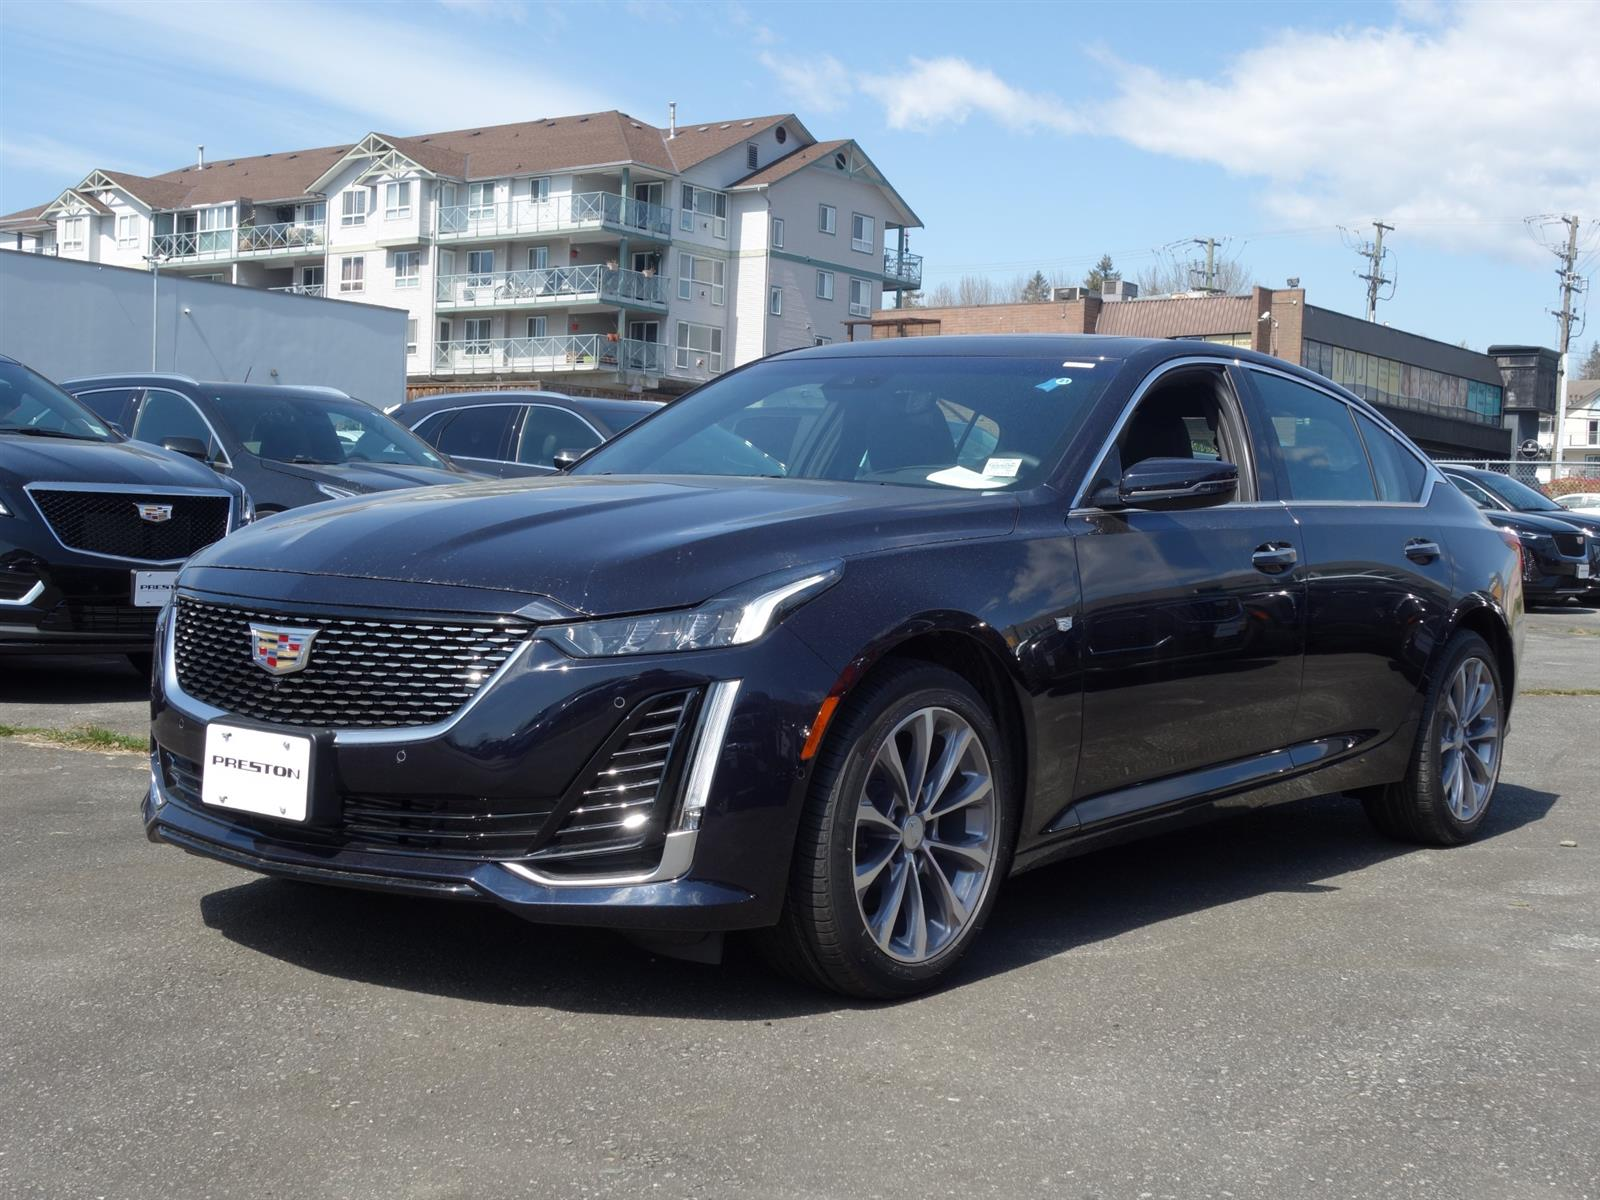 2020 cadillac ct5 for sale in langley, bc (1705117914